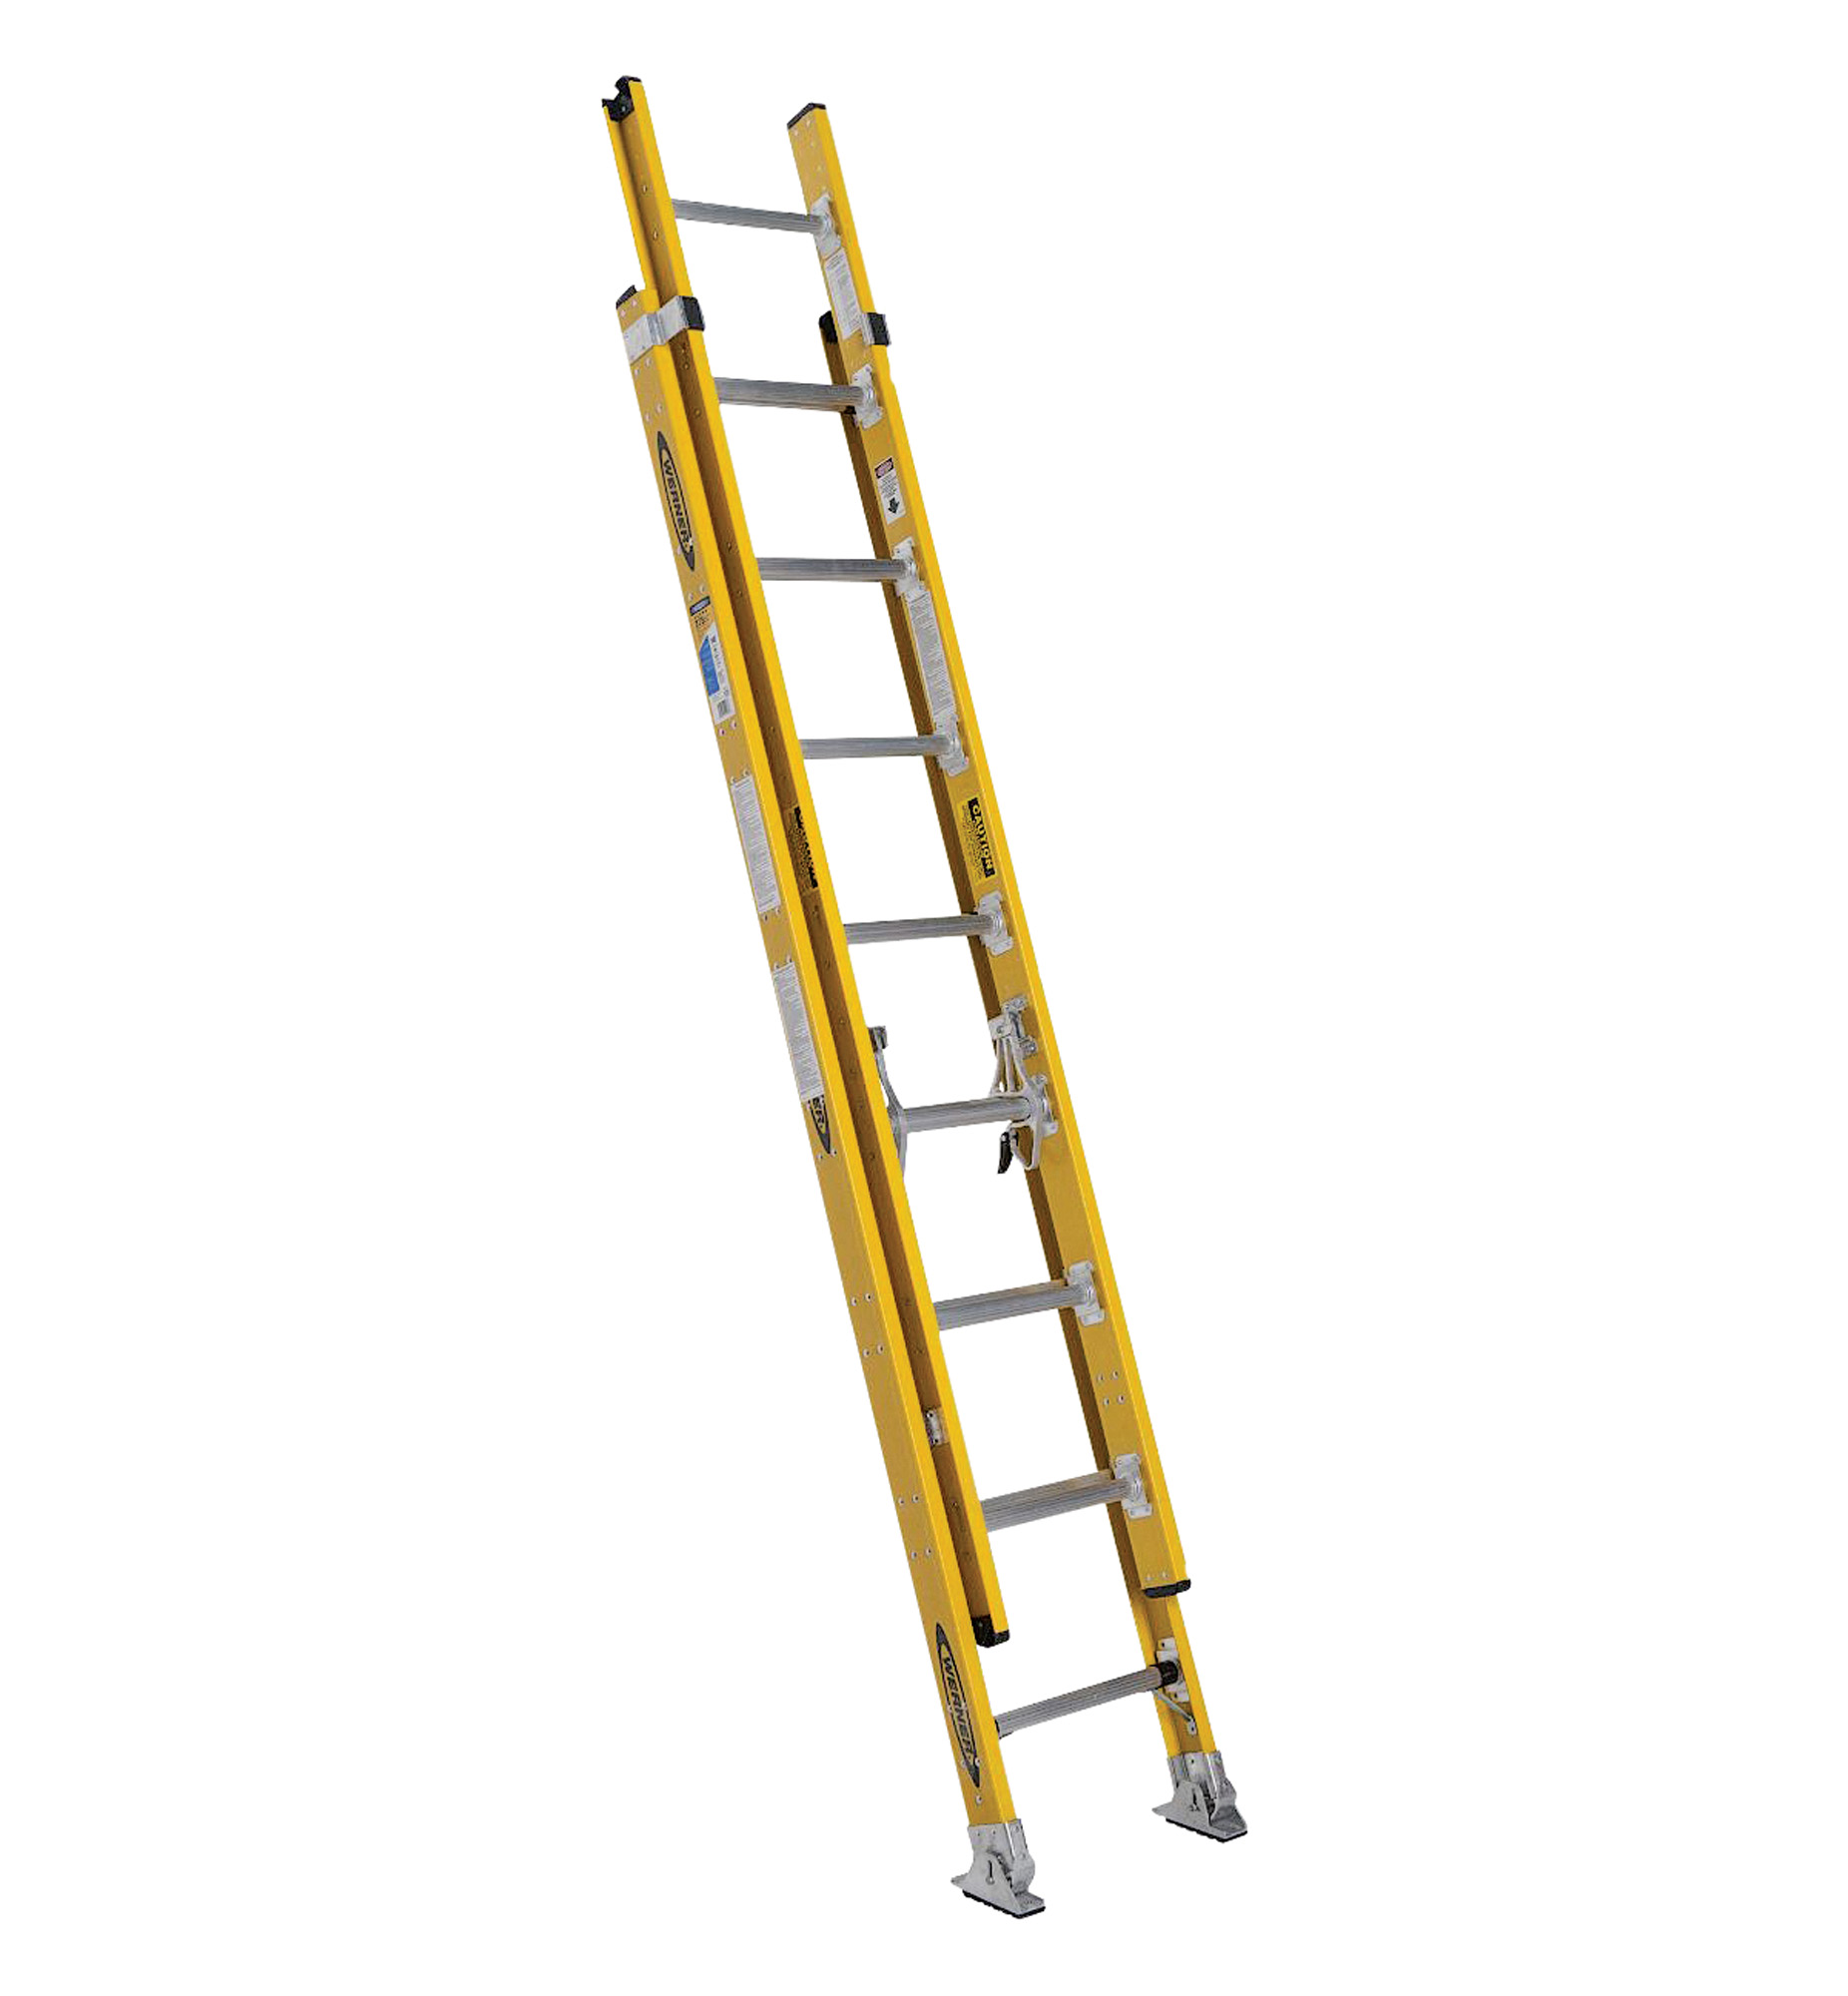 Werner's 16' extension ladder